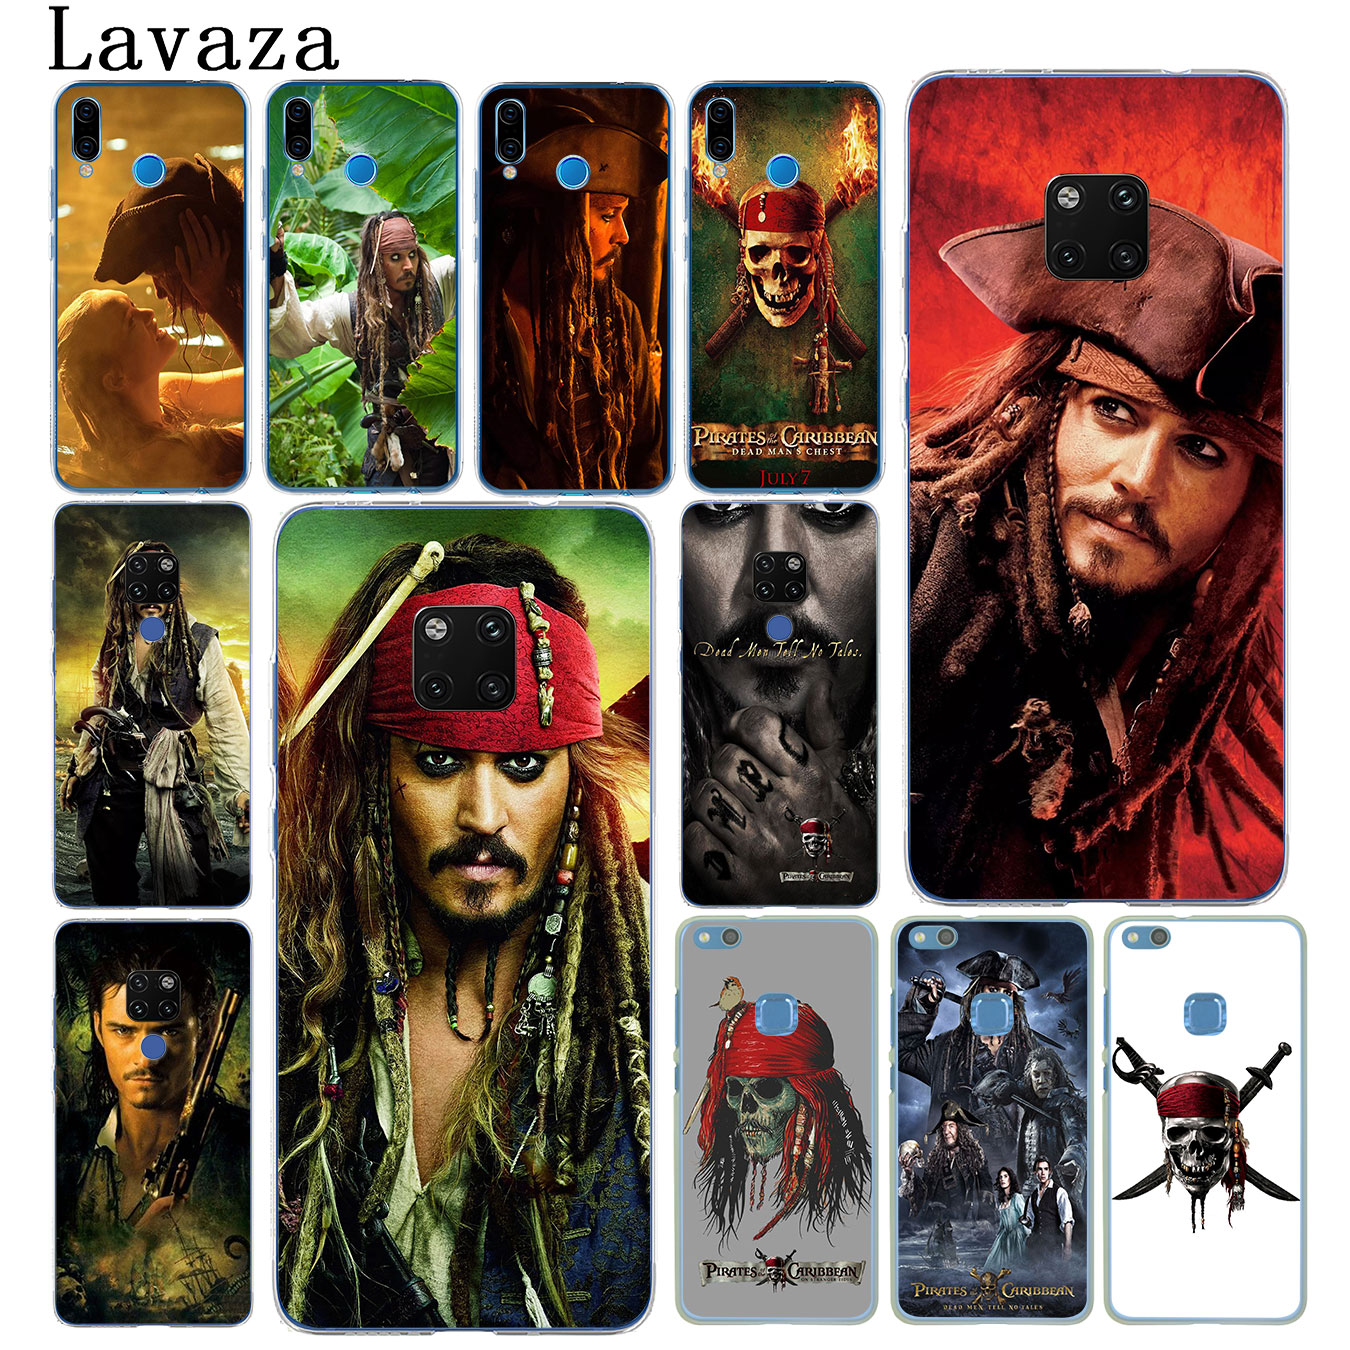 Lavaza Pirates of the Caribbean Johnny Depp Phone Case for Huawei Mate 30 20 Pro 10 Lite Y6 Prime Nova 5I 4 3i 3 2i 2 Lite Cover